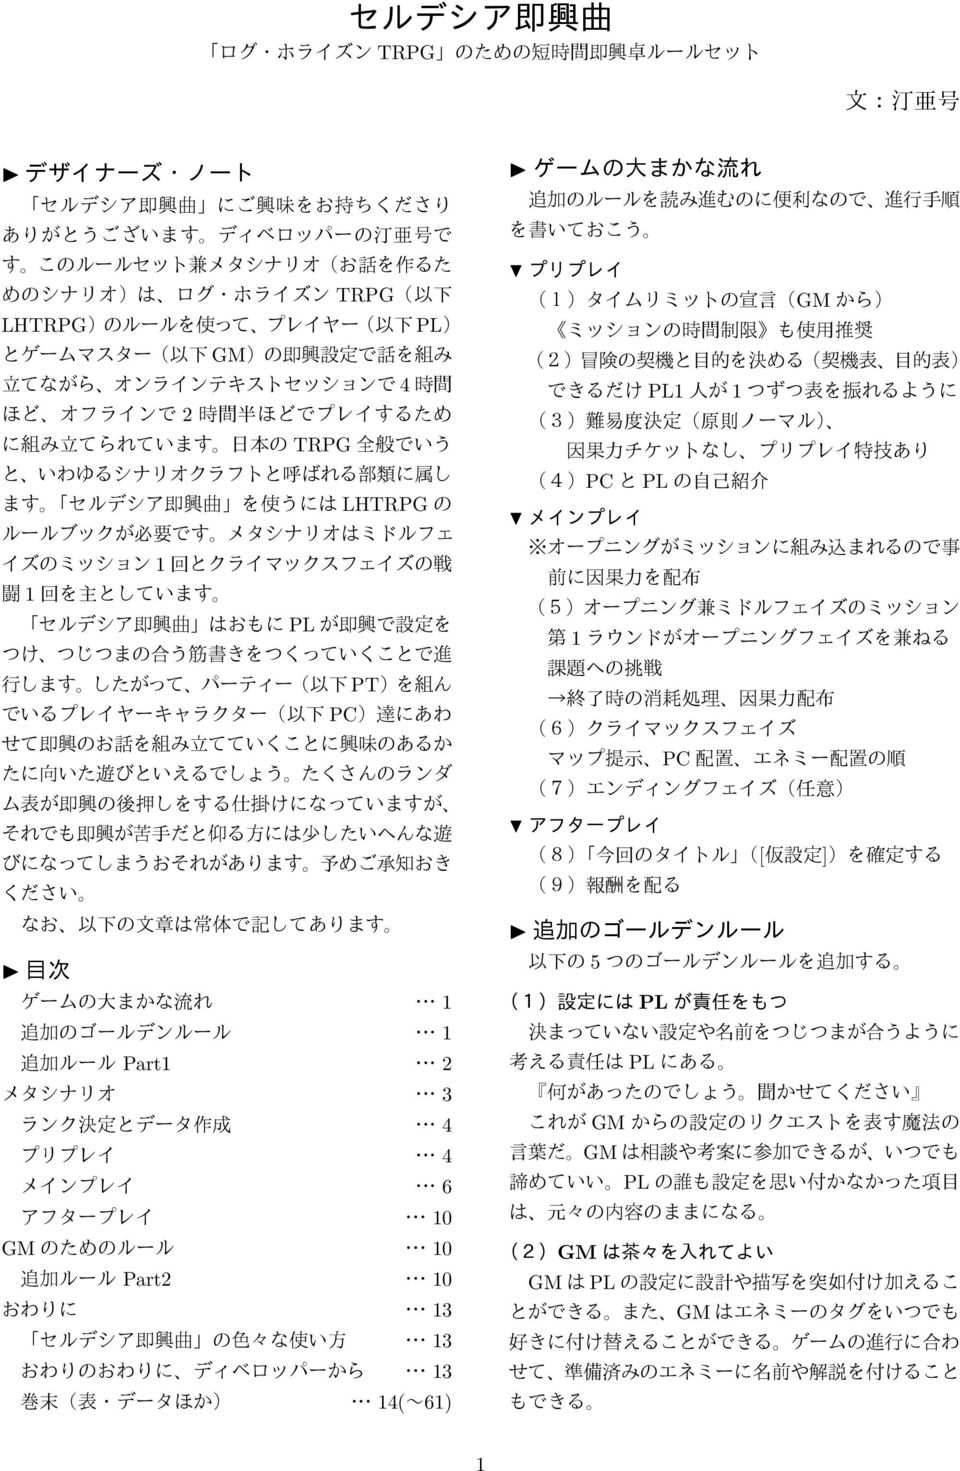 10 Part2 10 13 13 13 14( 61) GM PL1 1